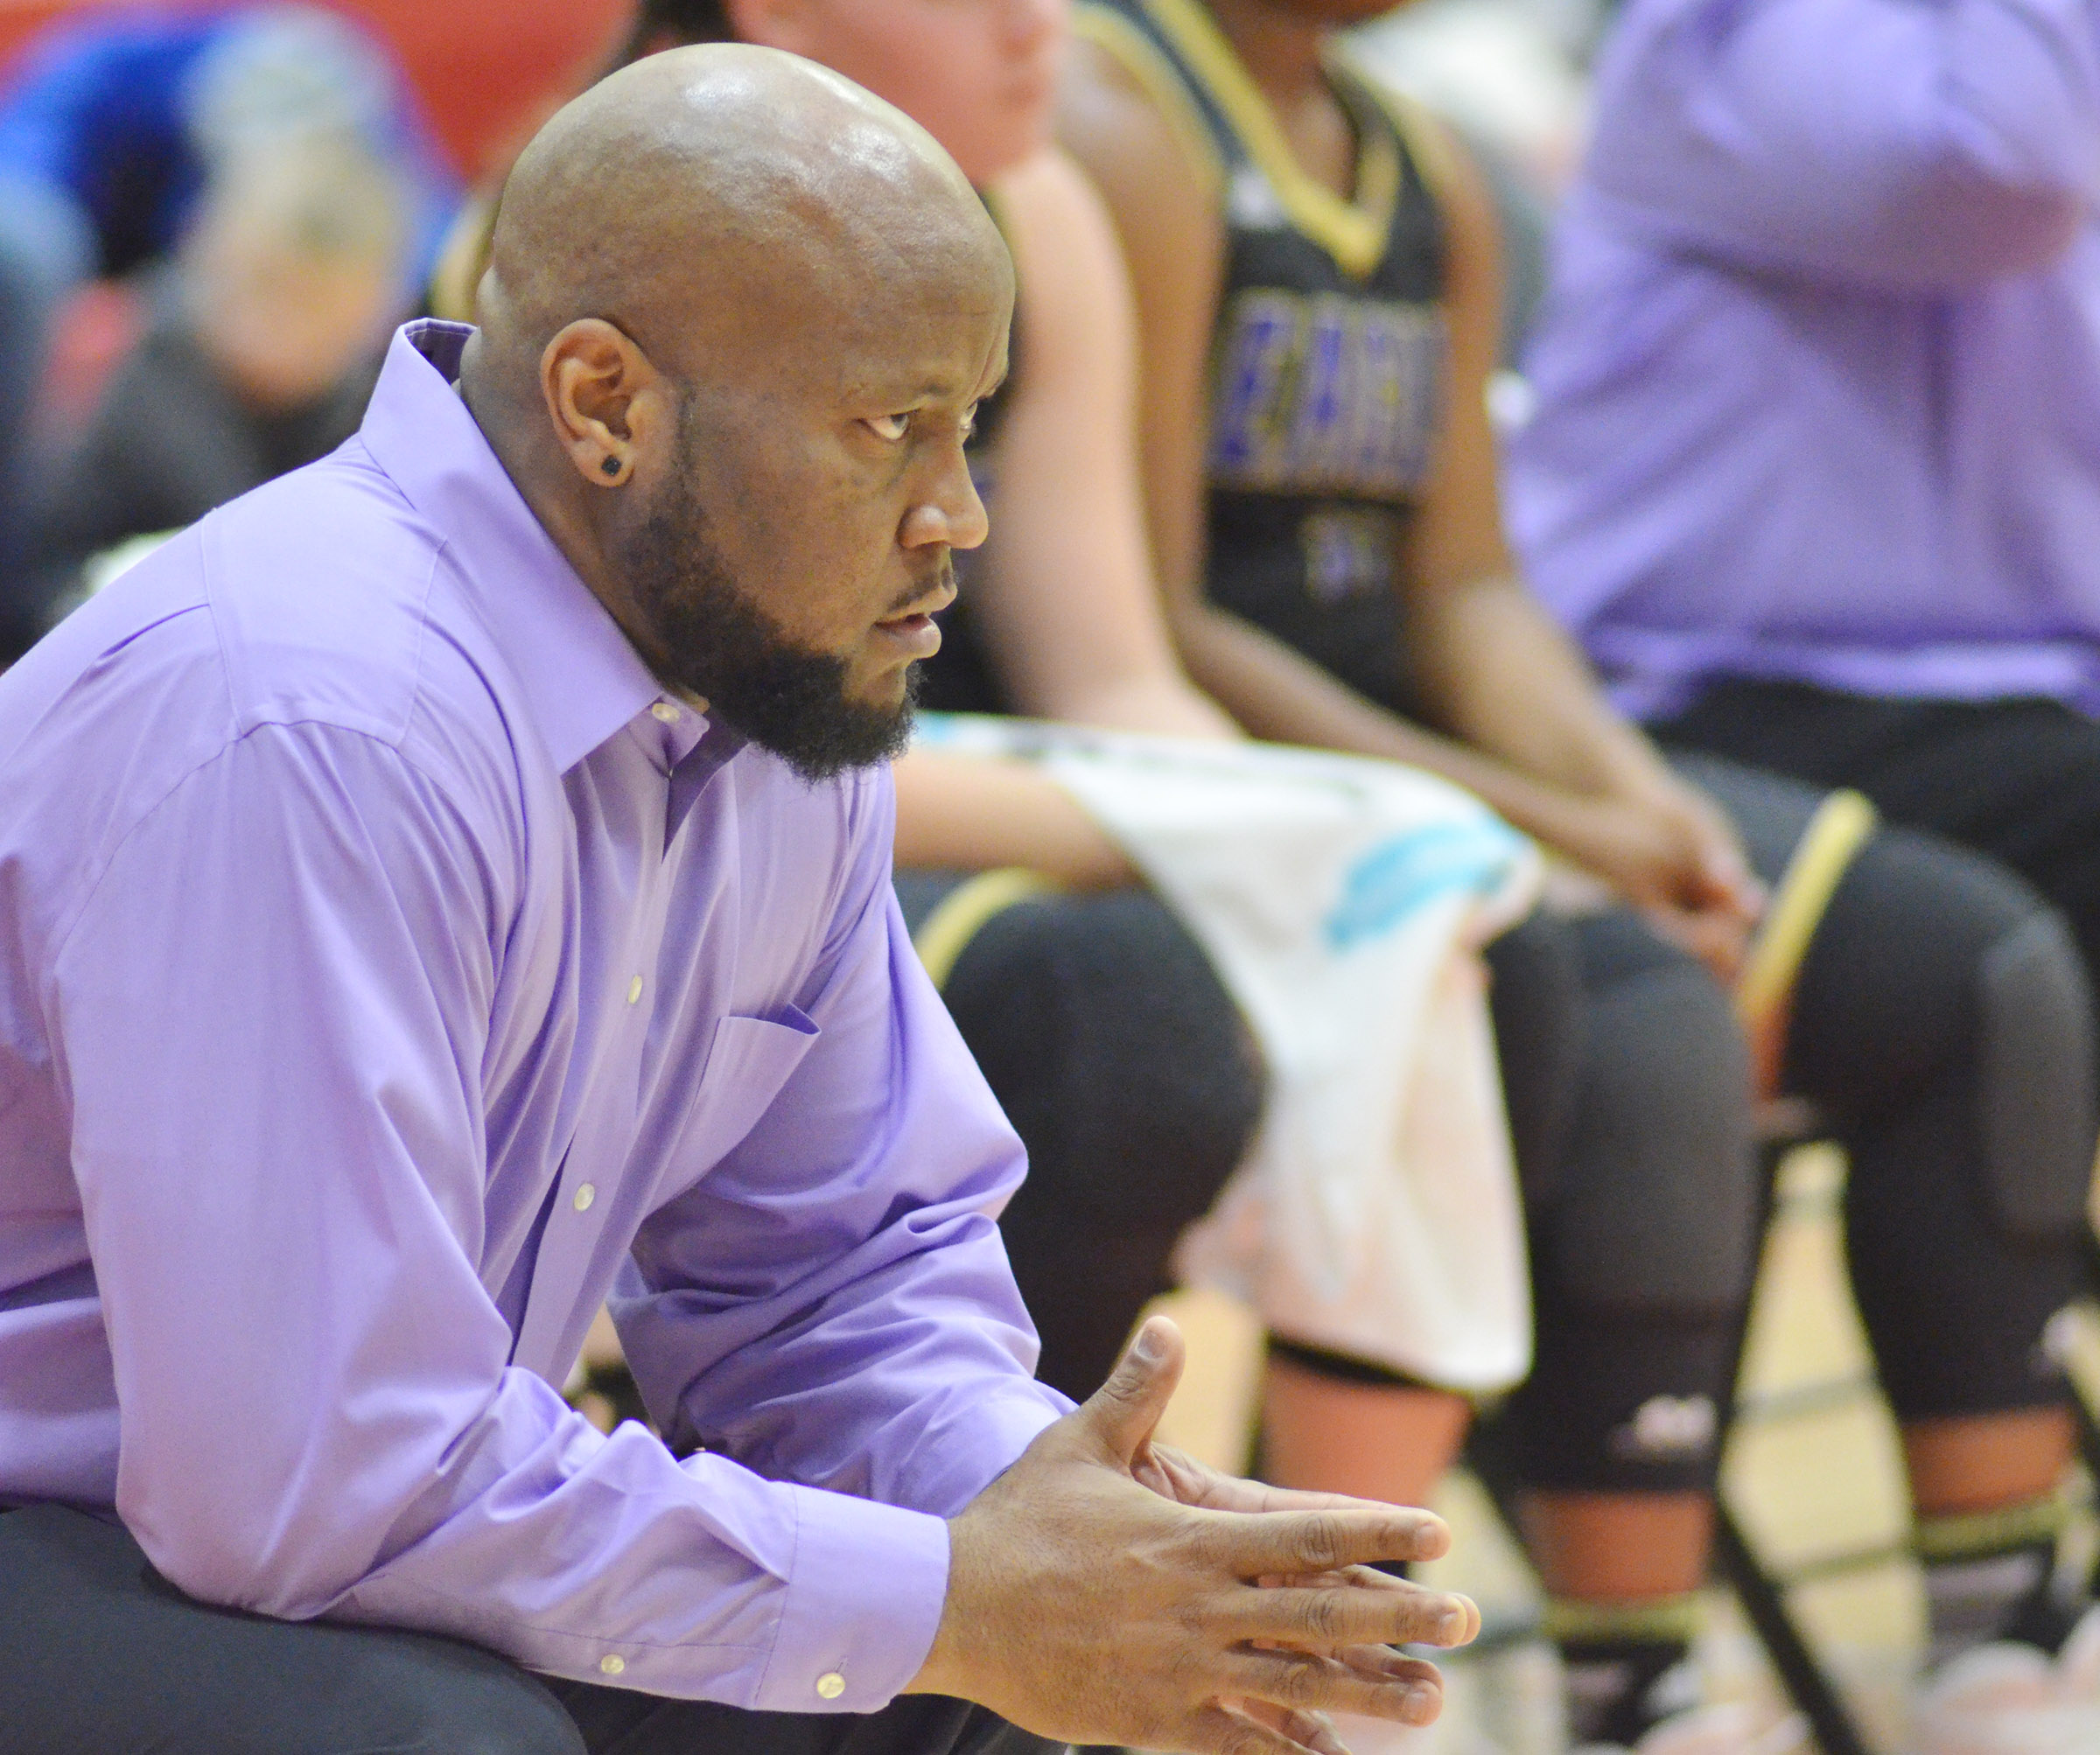 CHS girls' basketball head coach Anthony Epps watches as his players score.